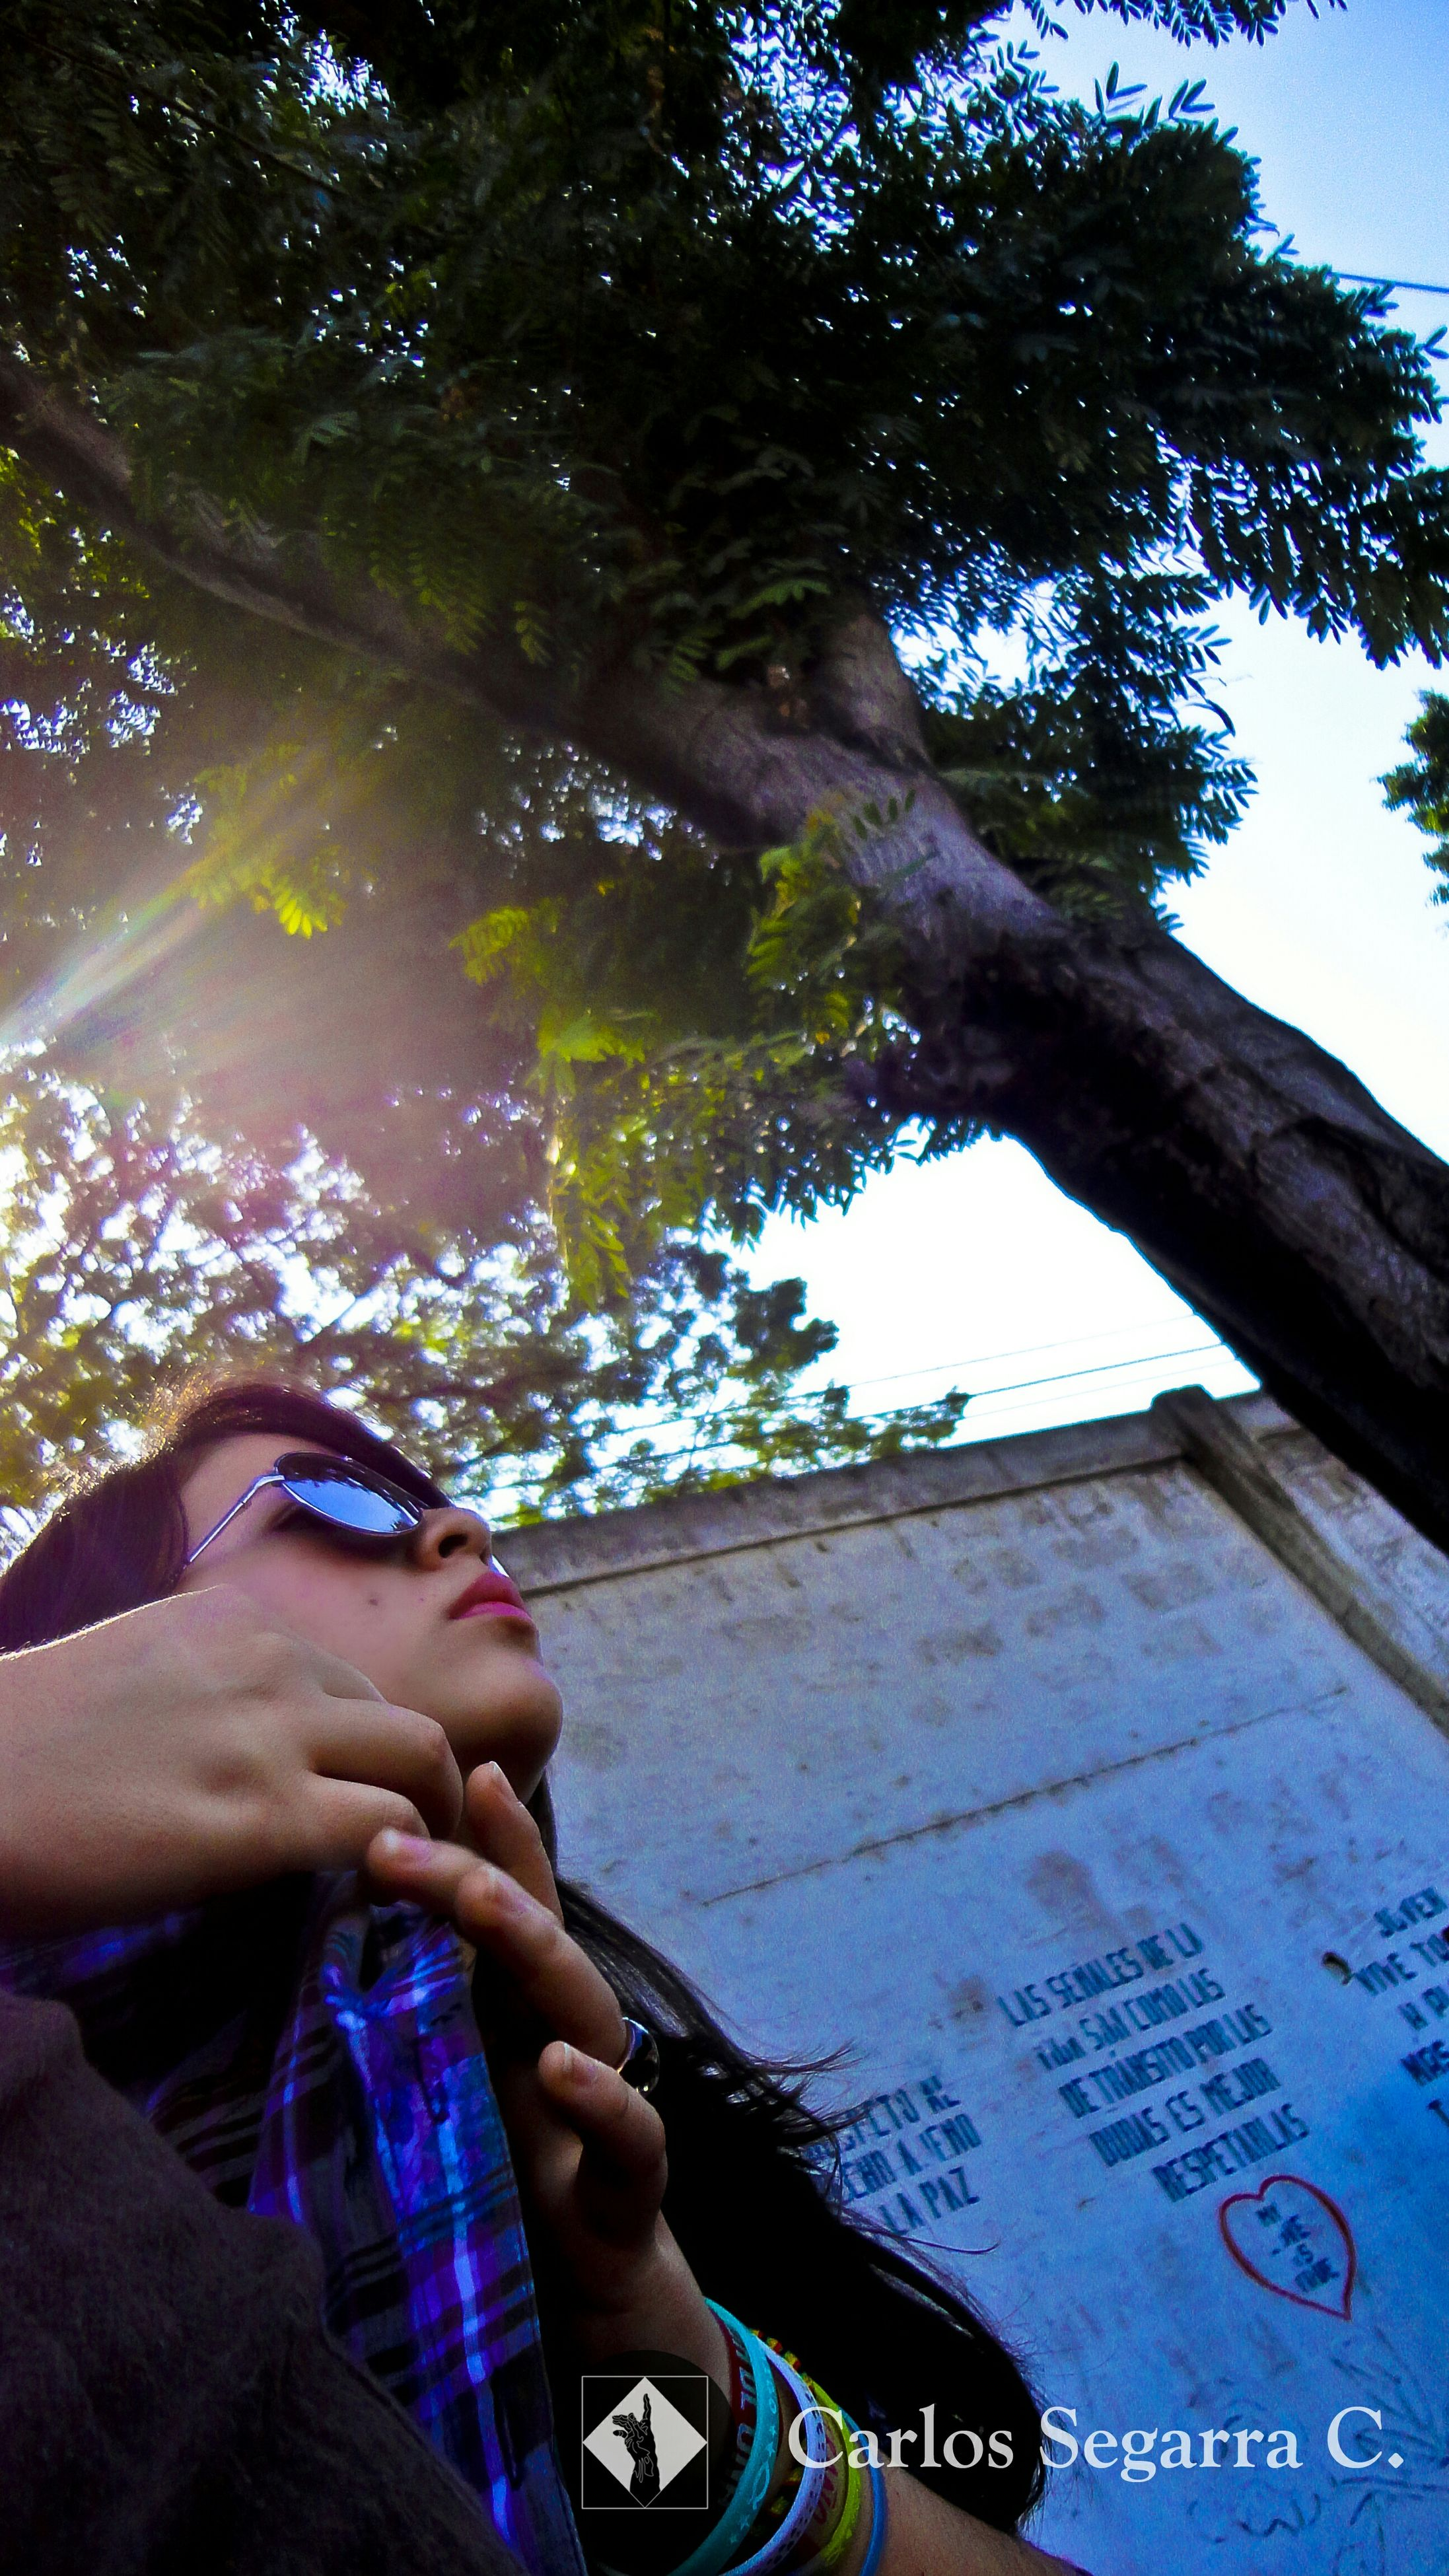 lifestyles, leisure activity, tree, young adult, holding, photographing, person, photography themes, headshot, men, sunglasses, personal perspective, sky, young men, day, communication